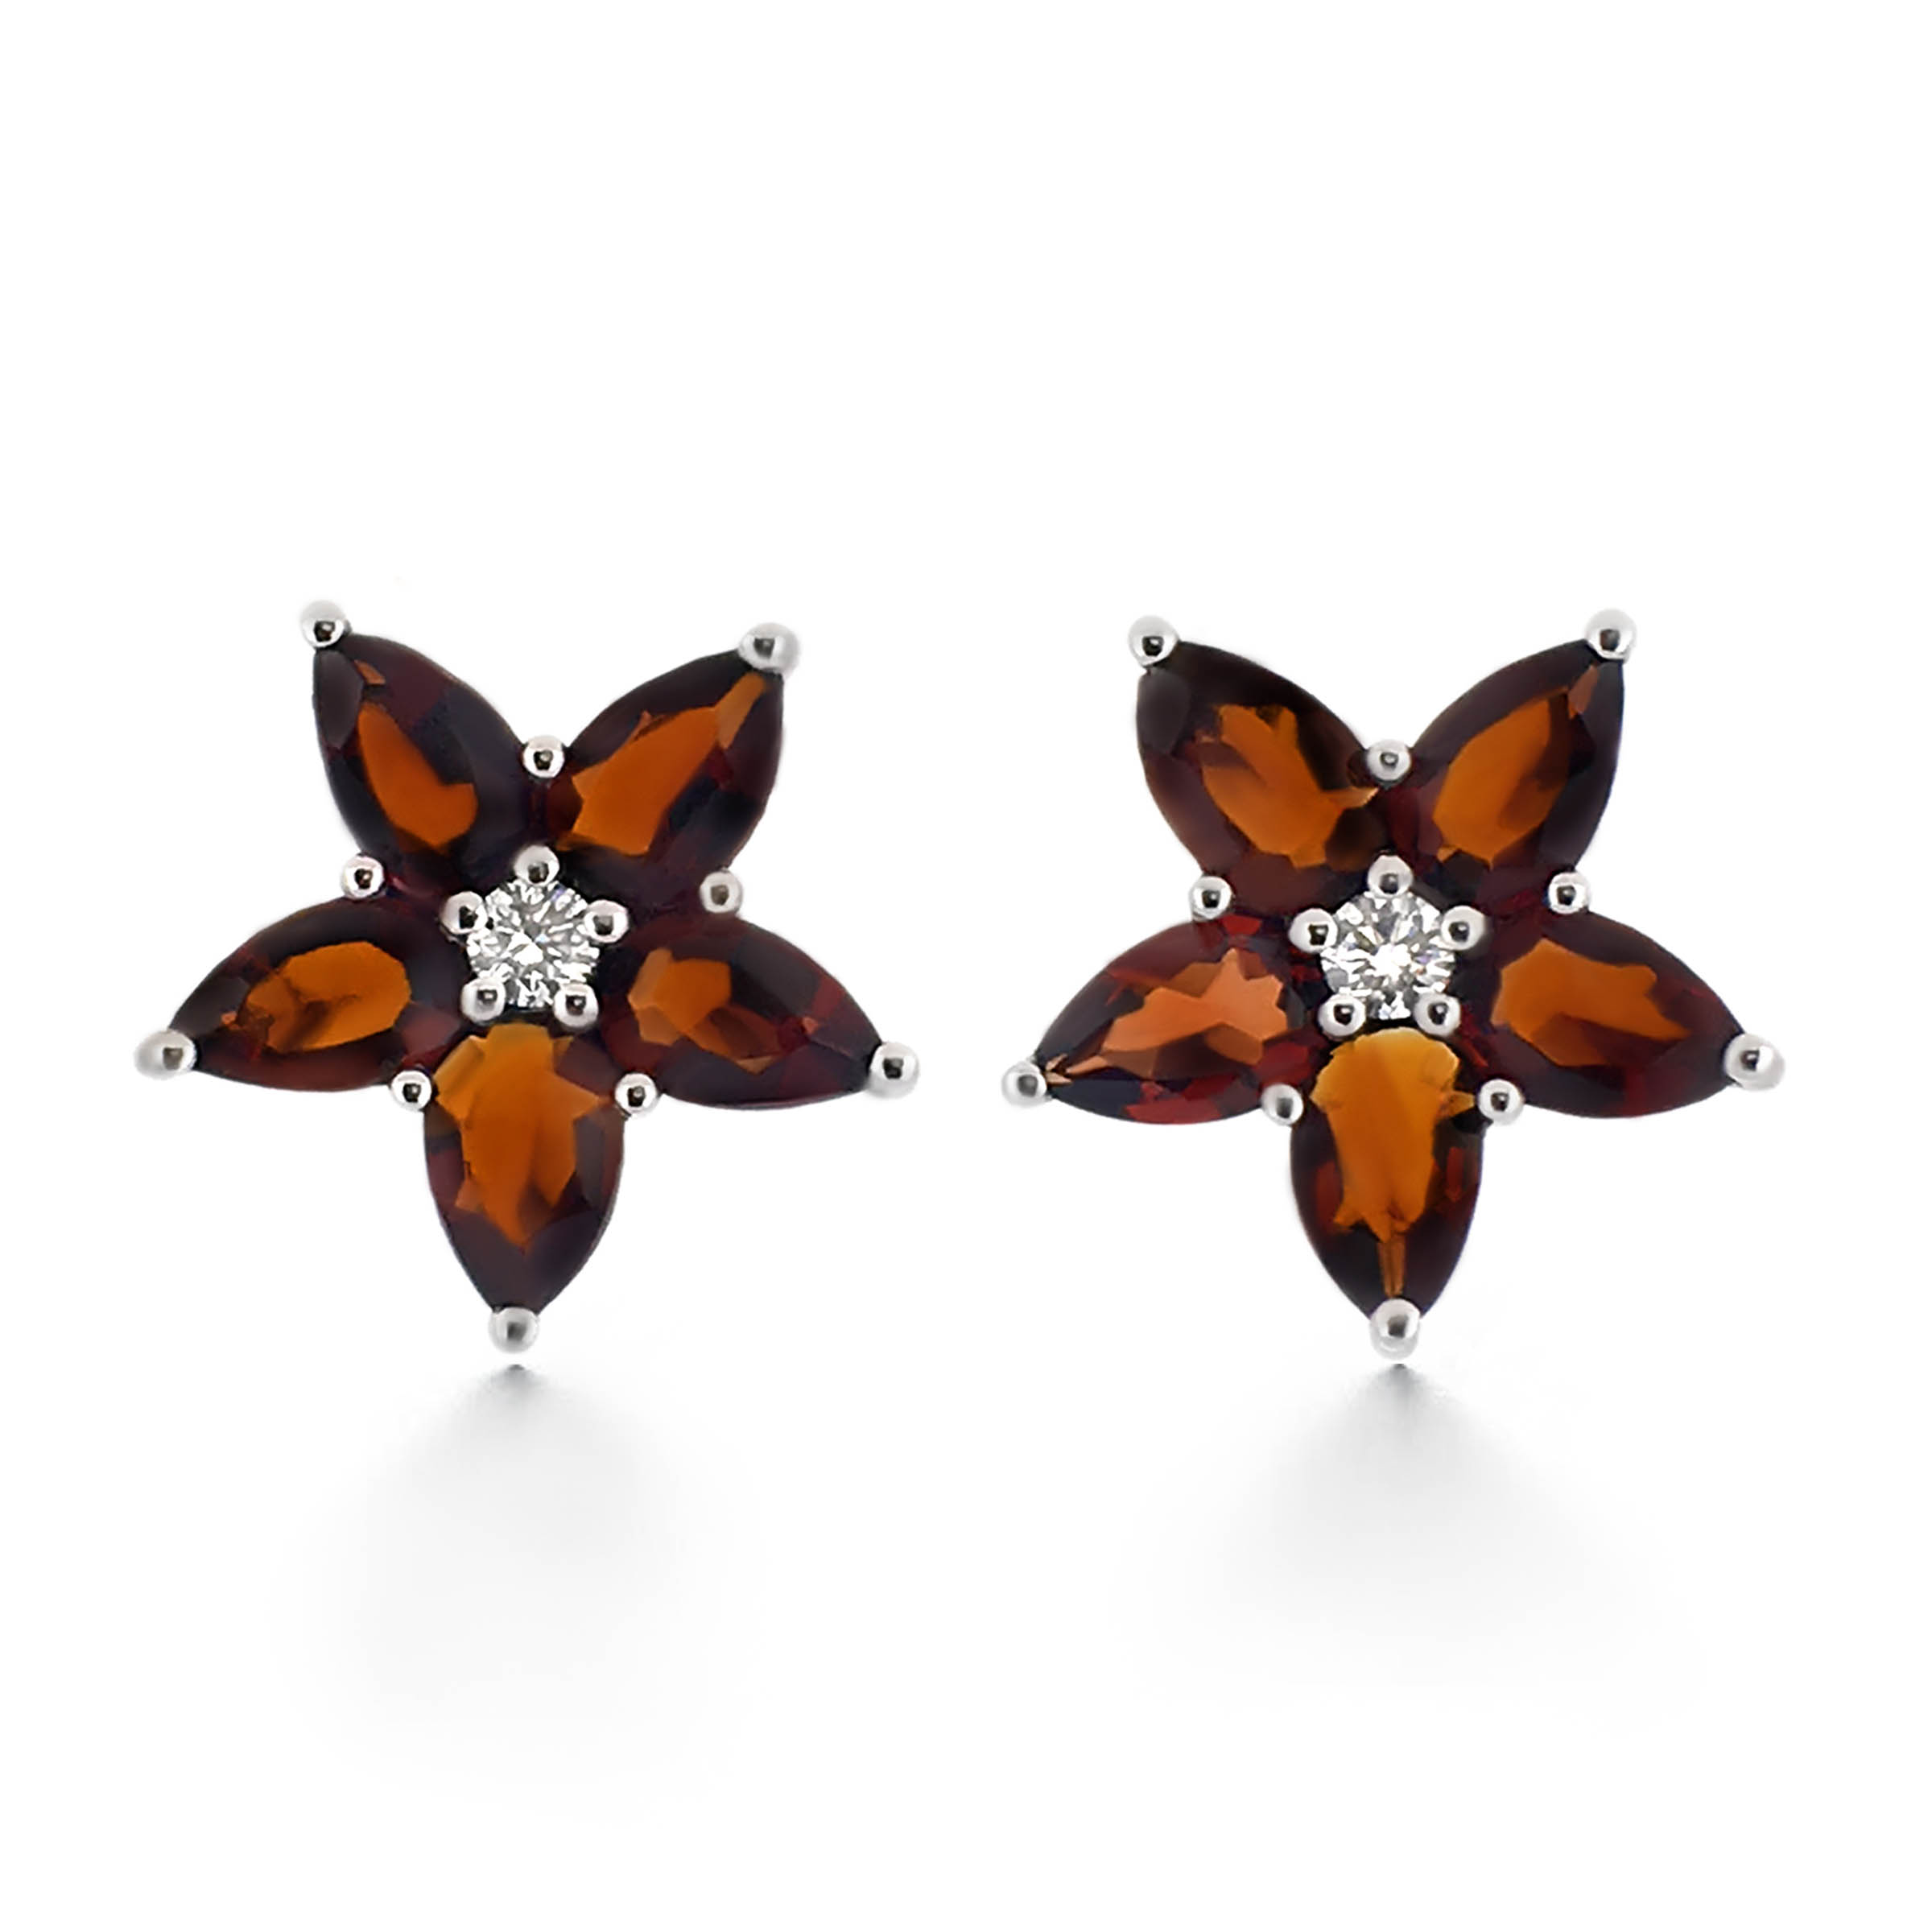 garnet stud and diamond earrings- haywards of hong kong